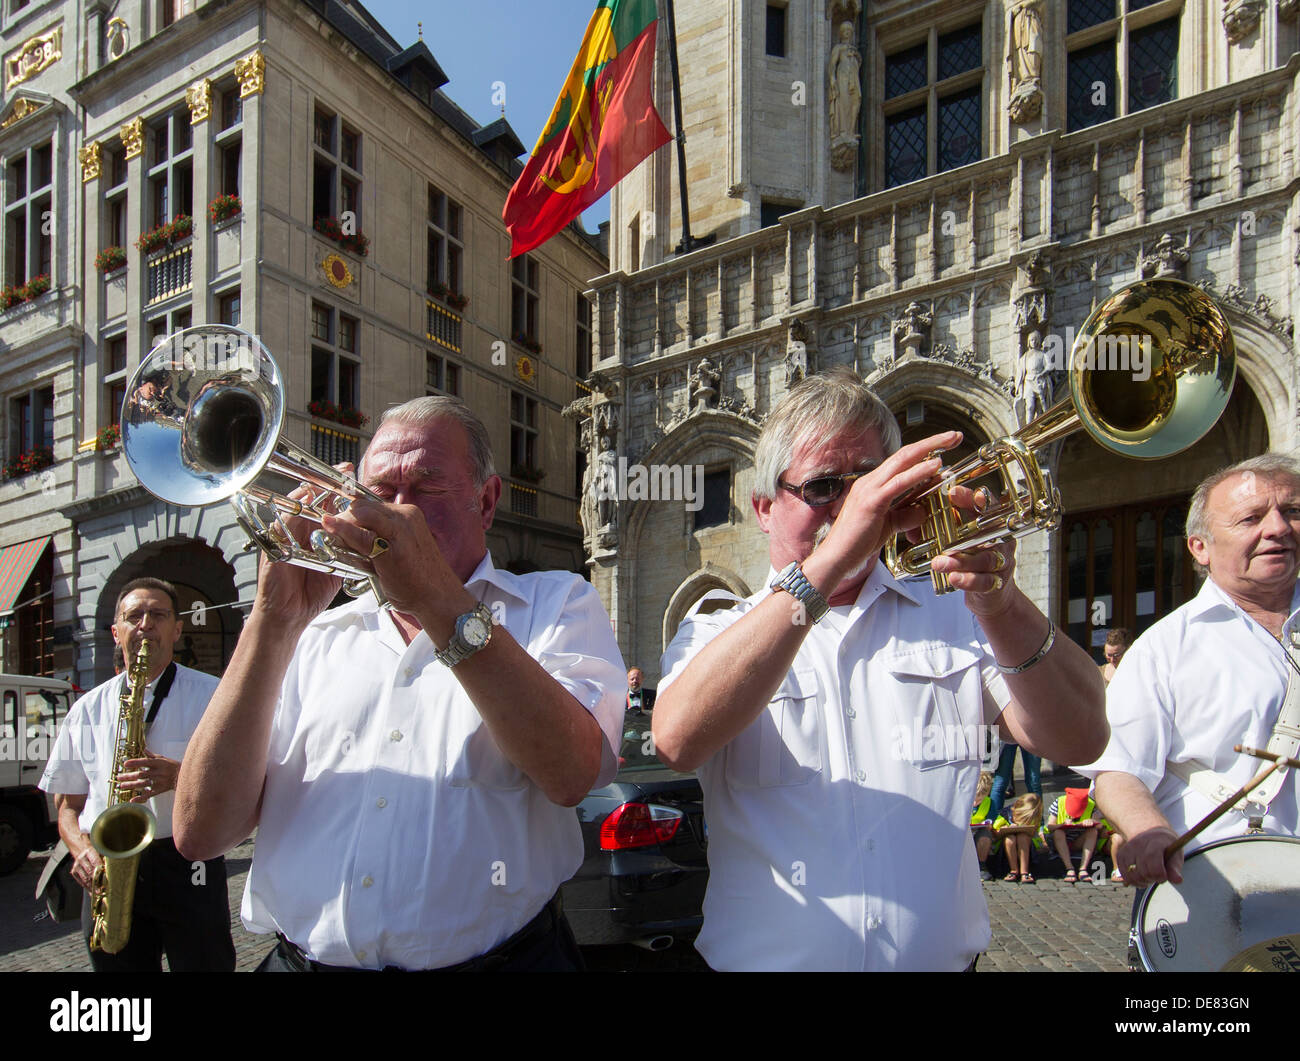 trumpet players musicians public performance celebration brussels - Stock Image